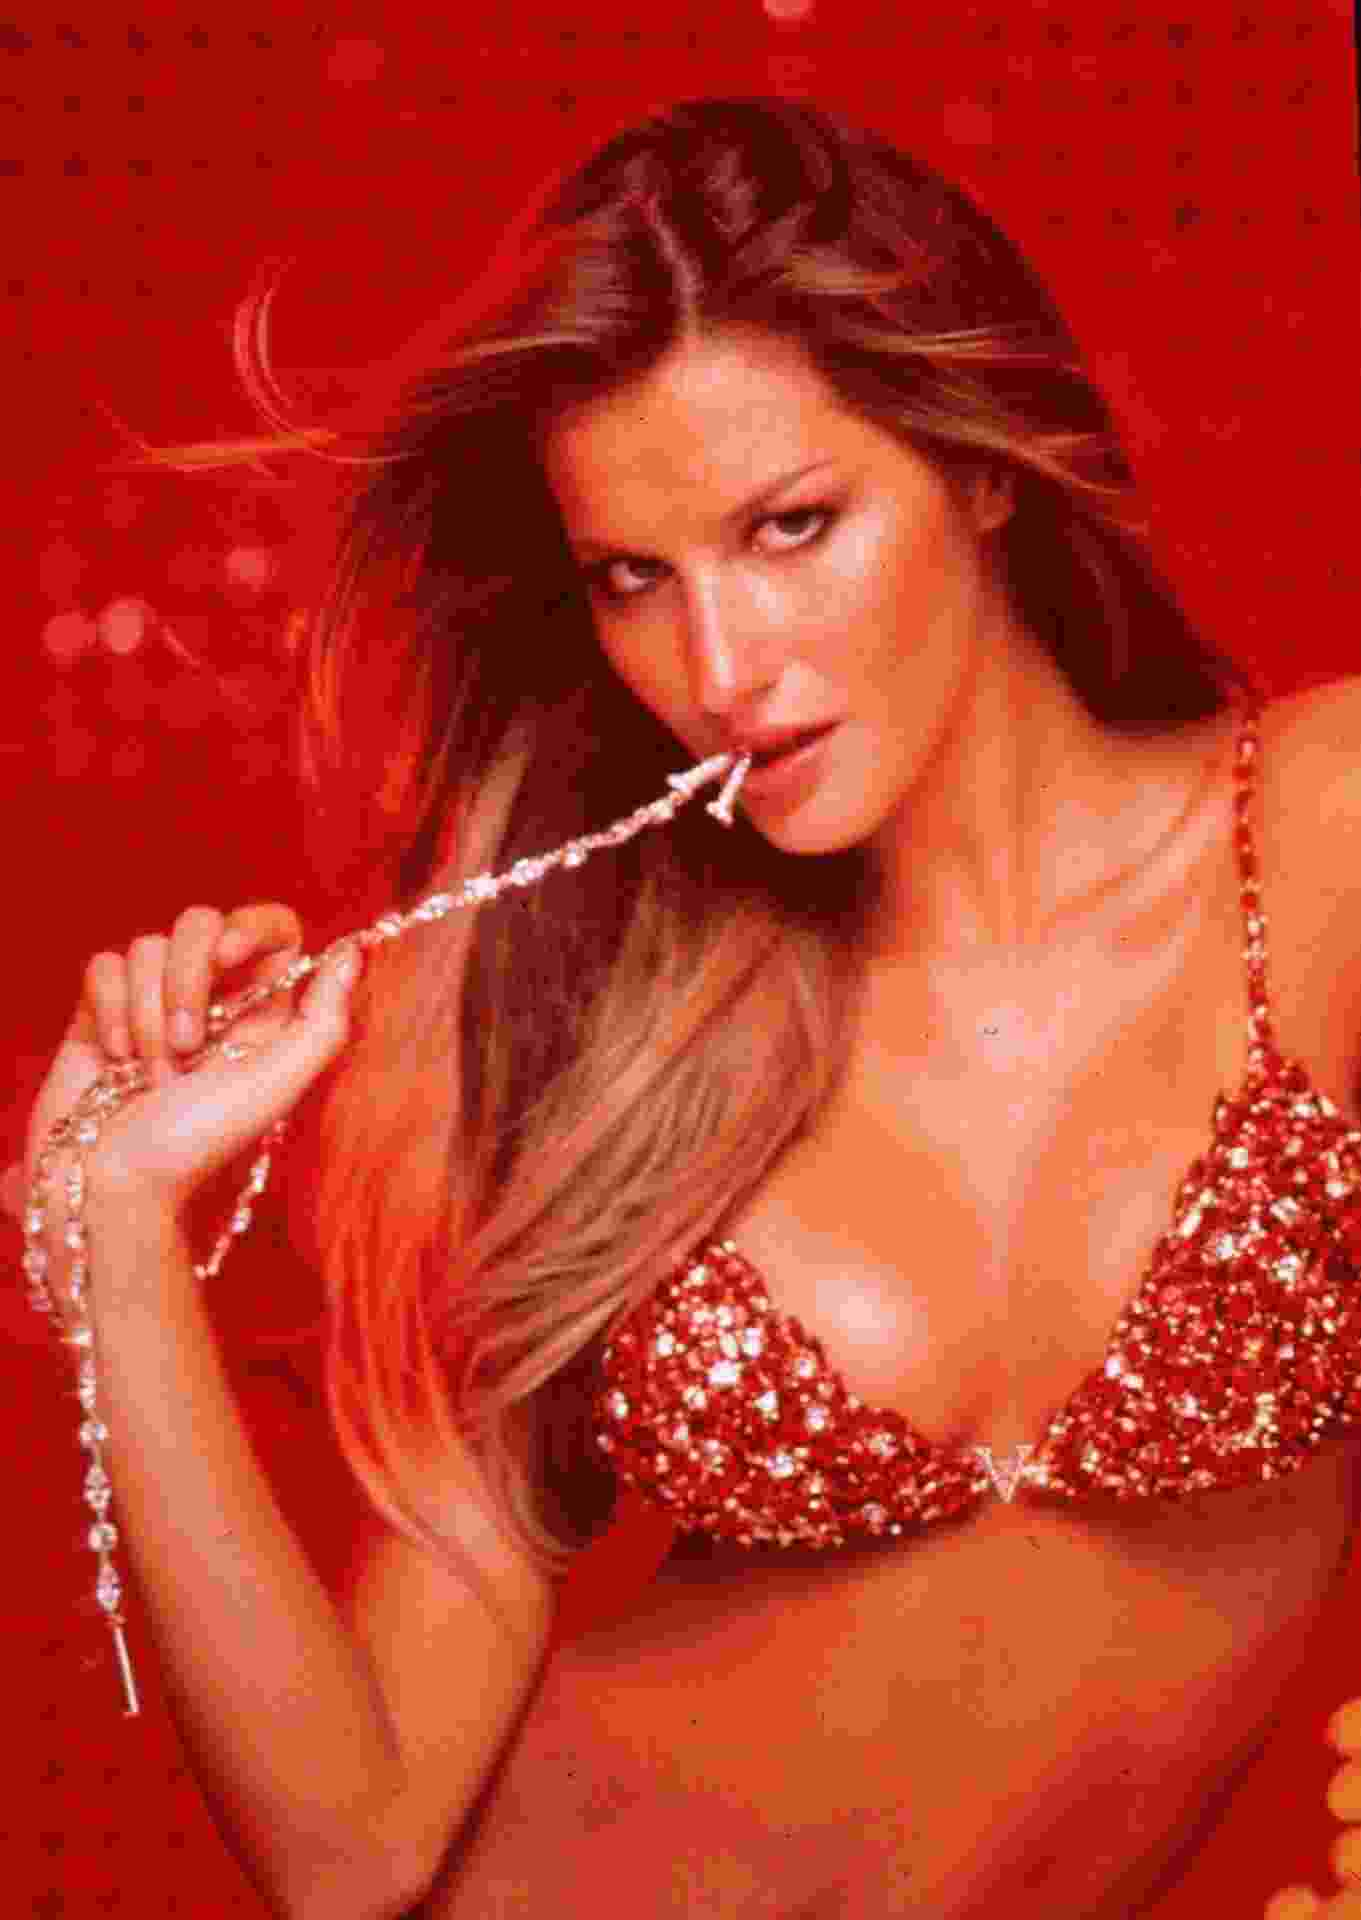 Gisele como angel  - Reuters